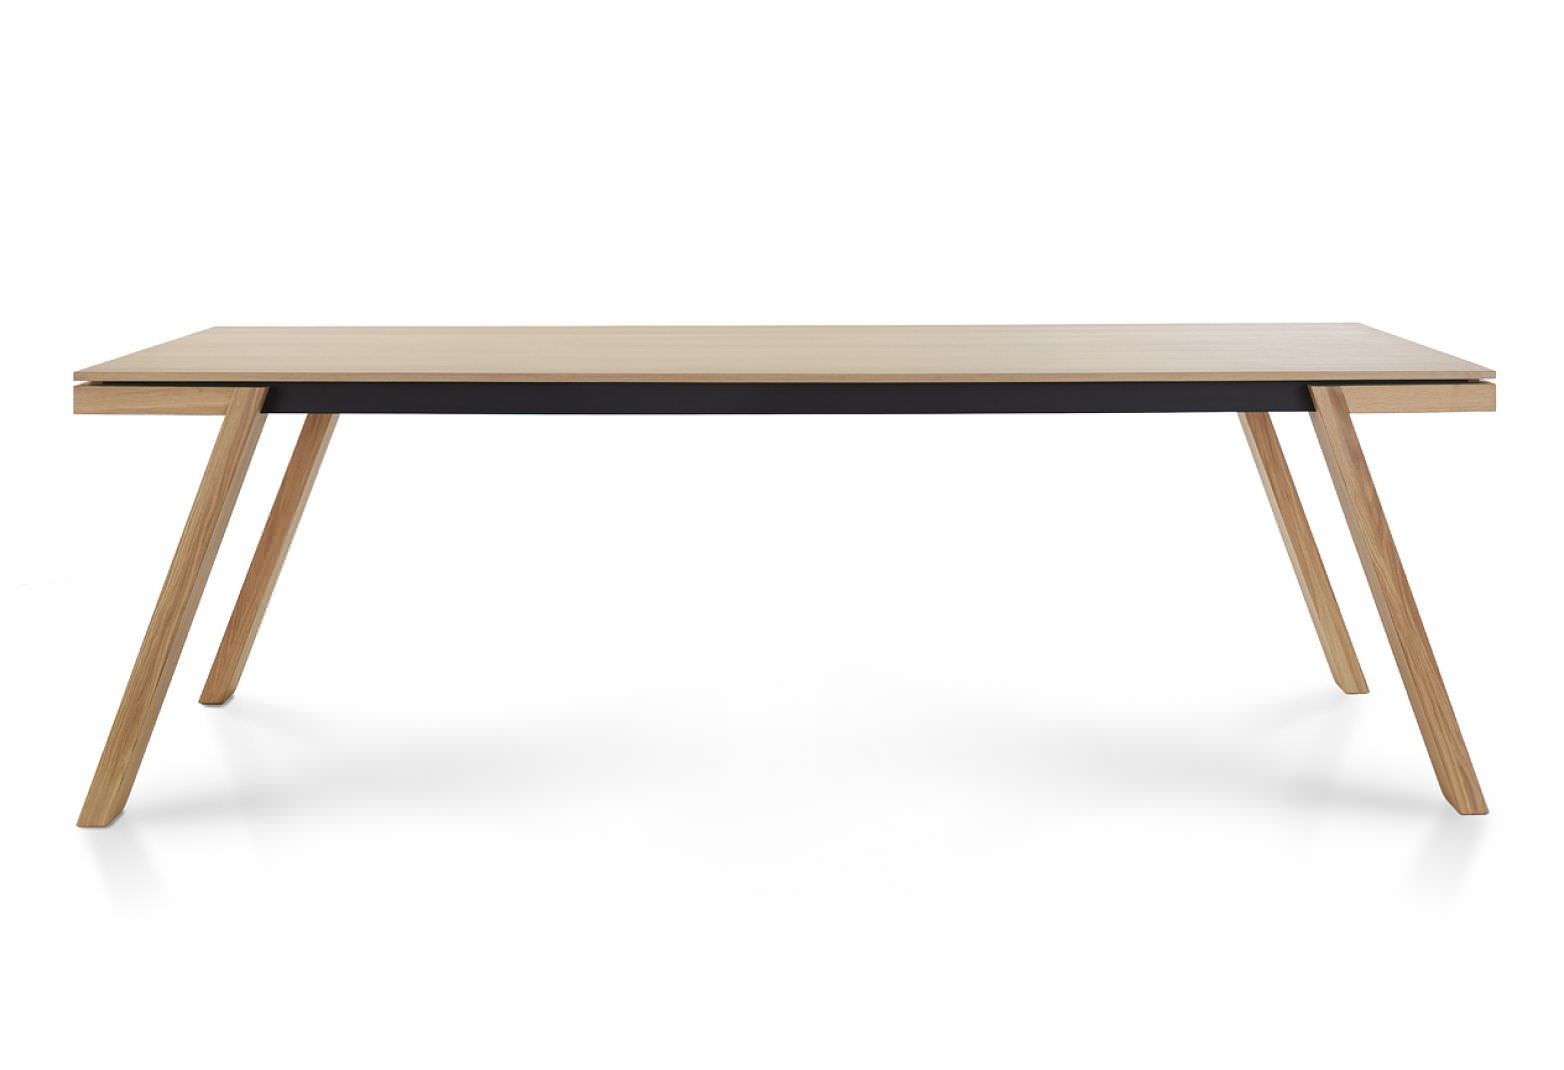 Tisch Modern Design contemporary dining table wooden rectangular by kees